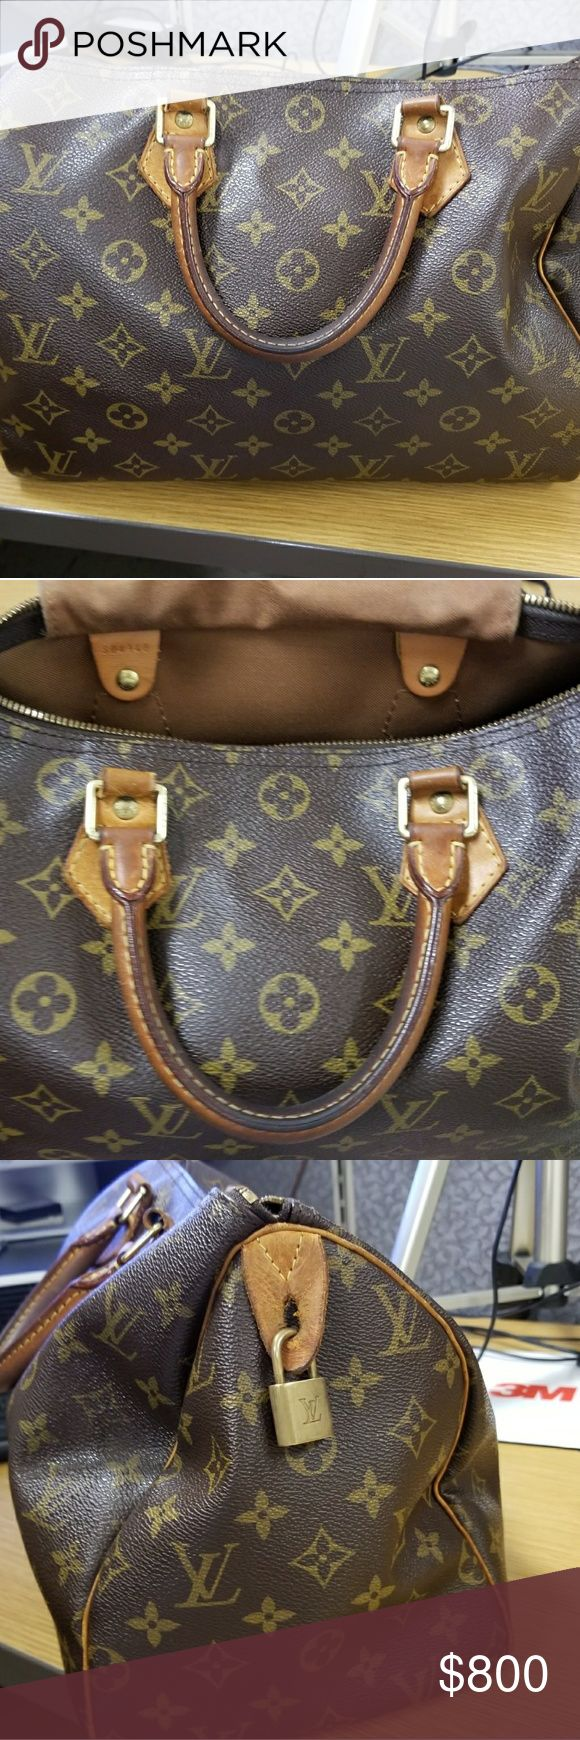 Louis Vuitton speedy bag 35 Bag in good shape minimal wear and tare owned and kept in smoke free envirnoment bag in decent useable condition owned for 4 years bought froom bloomingdales nyc Original box. Louis Vuitton Bags Totes